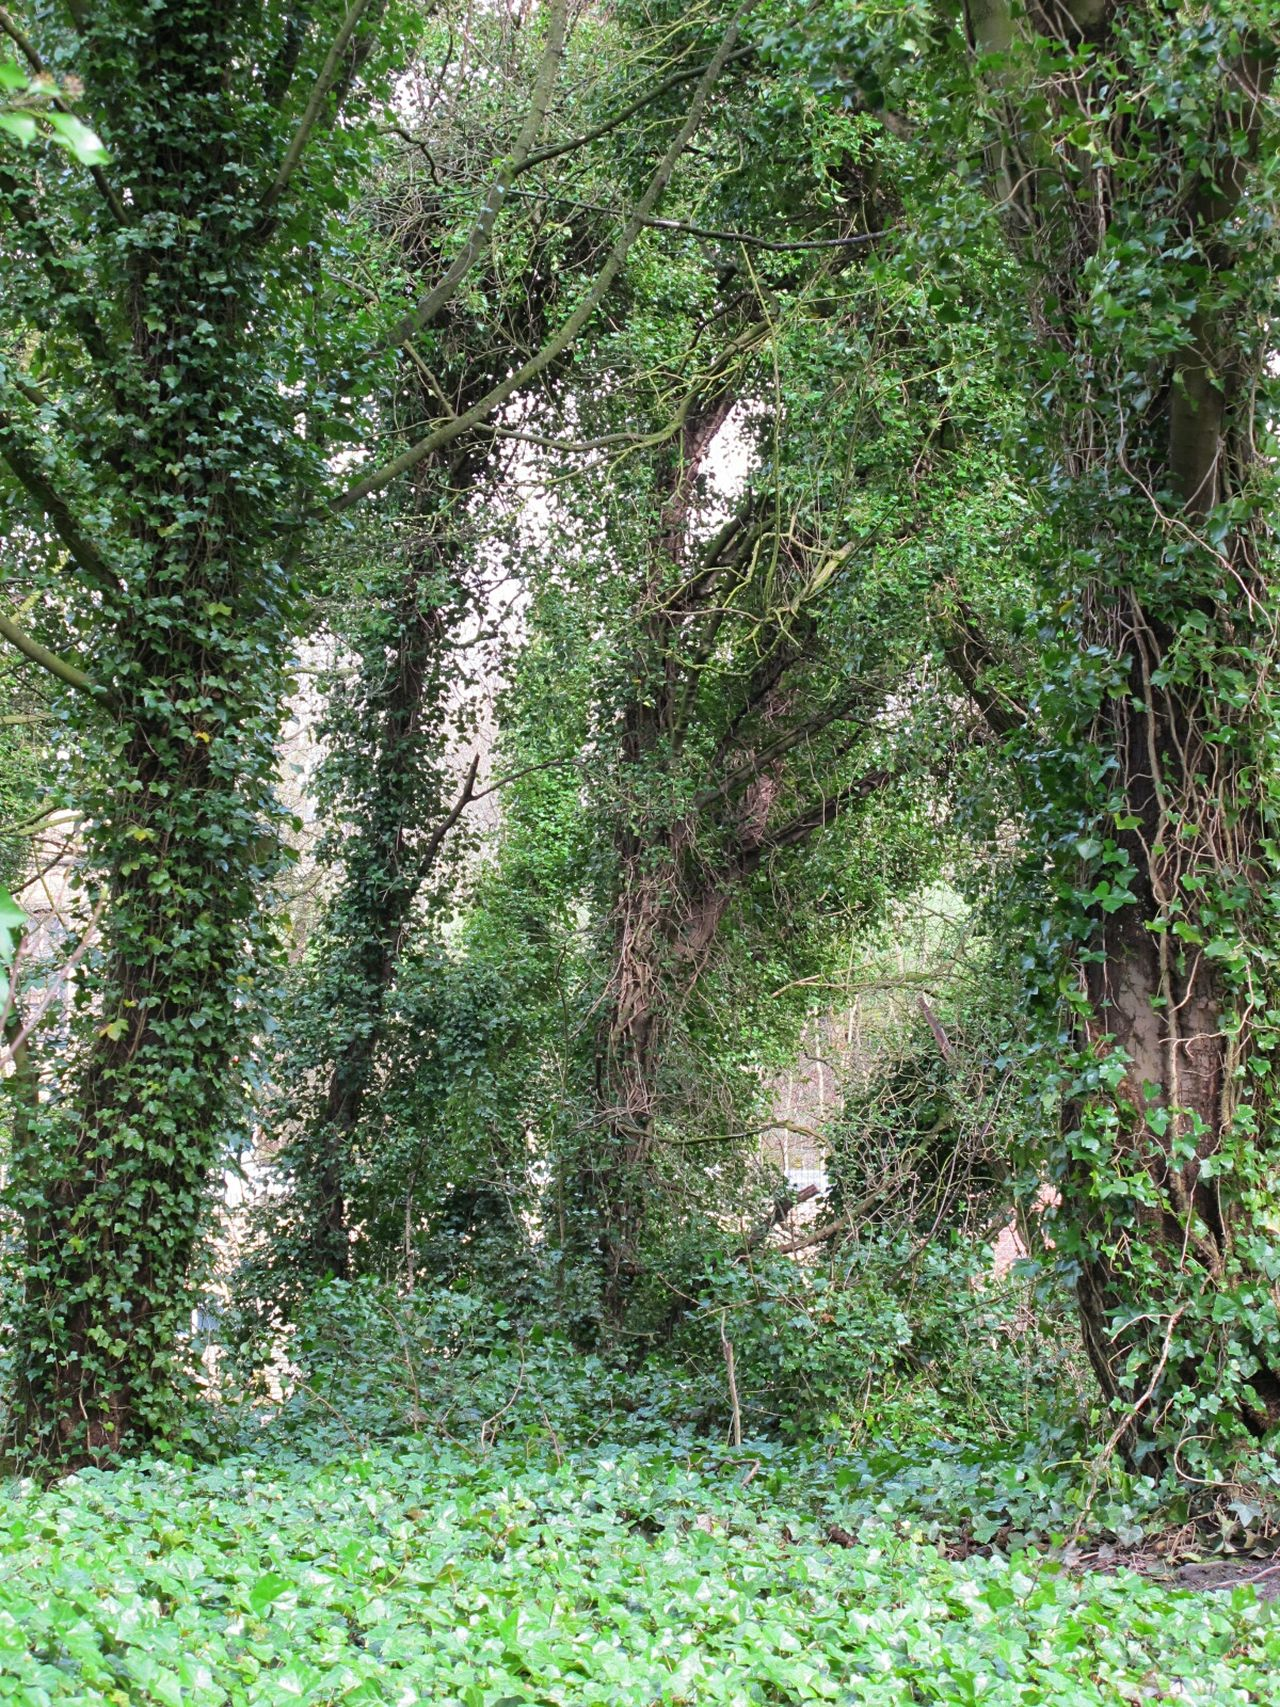 Growth Green Color Tree Nature No People Grass Day Outdoors Beauty In Nature Beauty In Nature Landscape Lush - Description Scenics Canals And Waterways Ivy Green Color